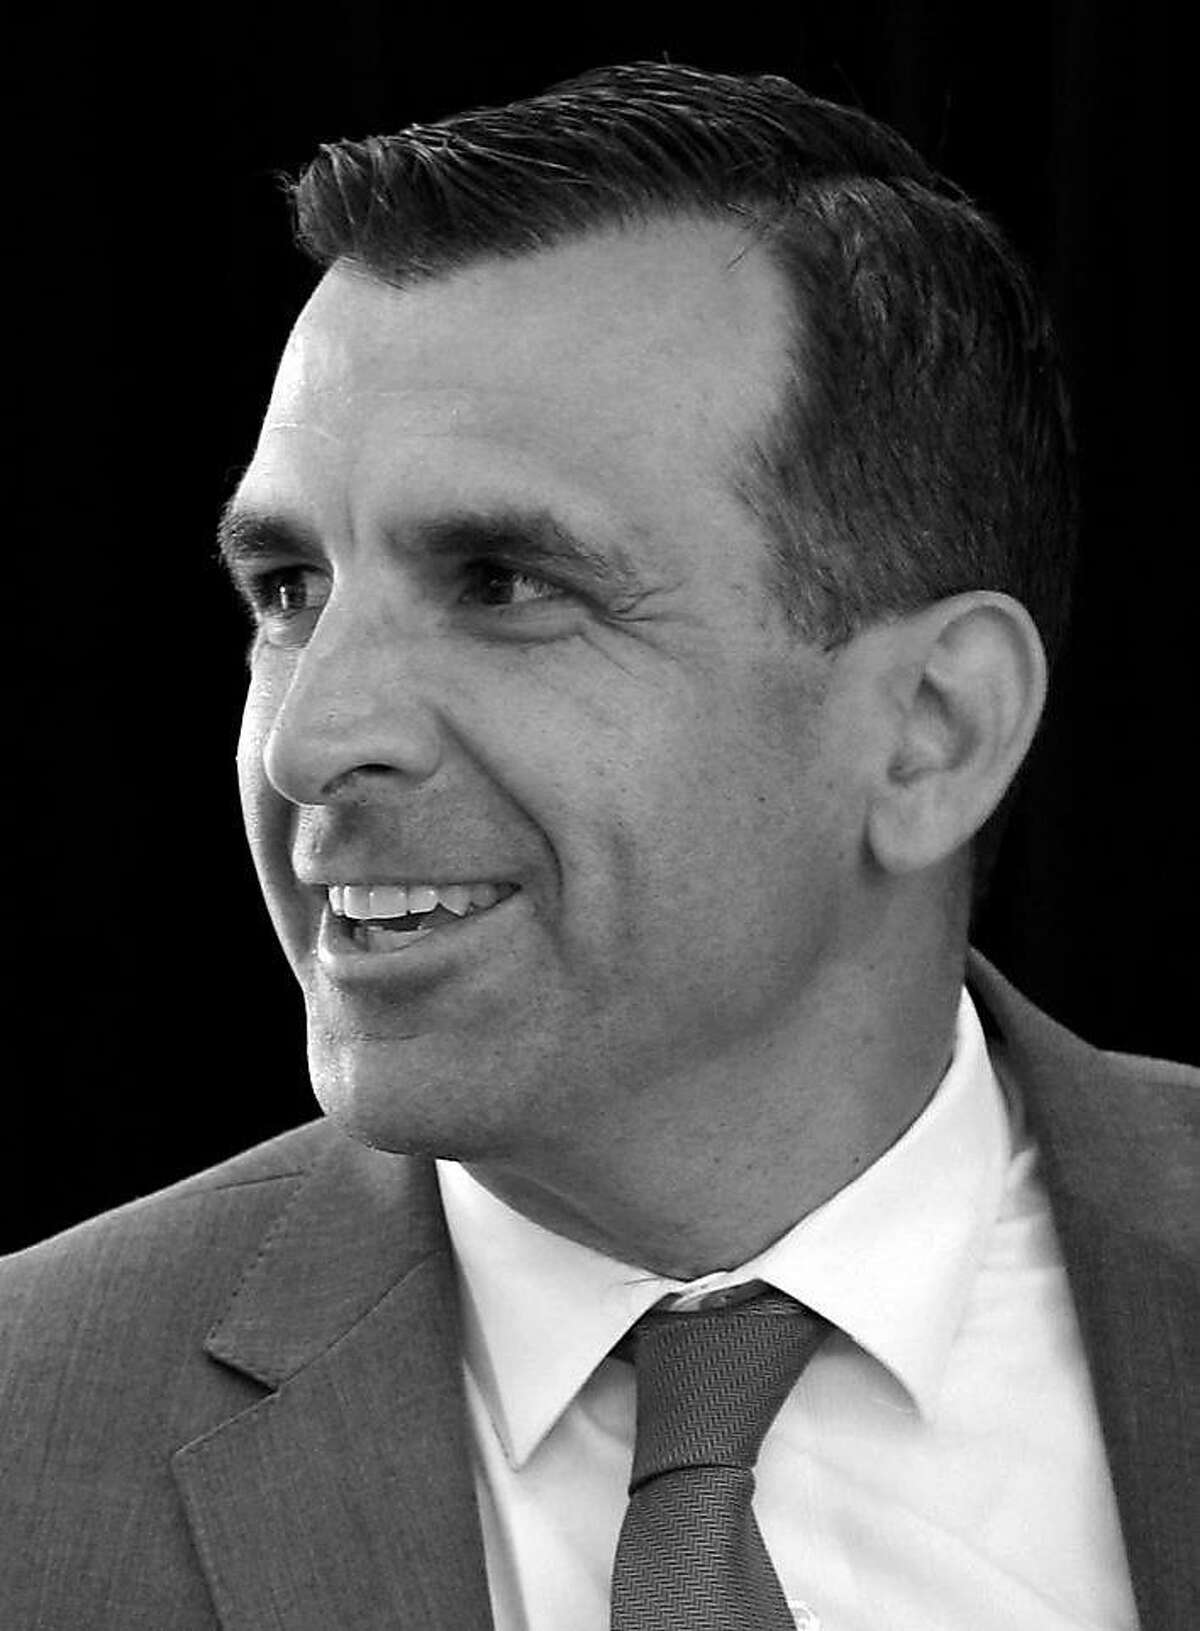 San Jose Mayor Sam Liccardo attends the opening of the Continental Silicon Valley Research and Development Center for automotive technology in San Jose, Calif. on Wednesday, April 12, 2017.